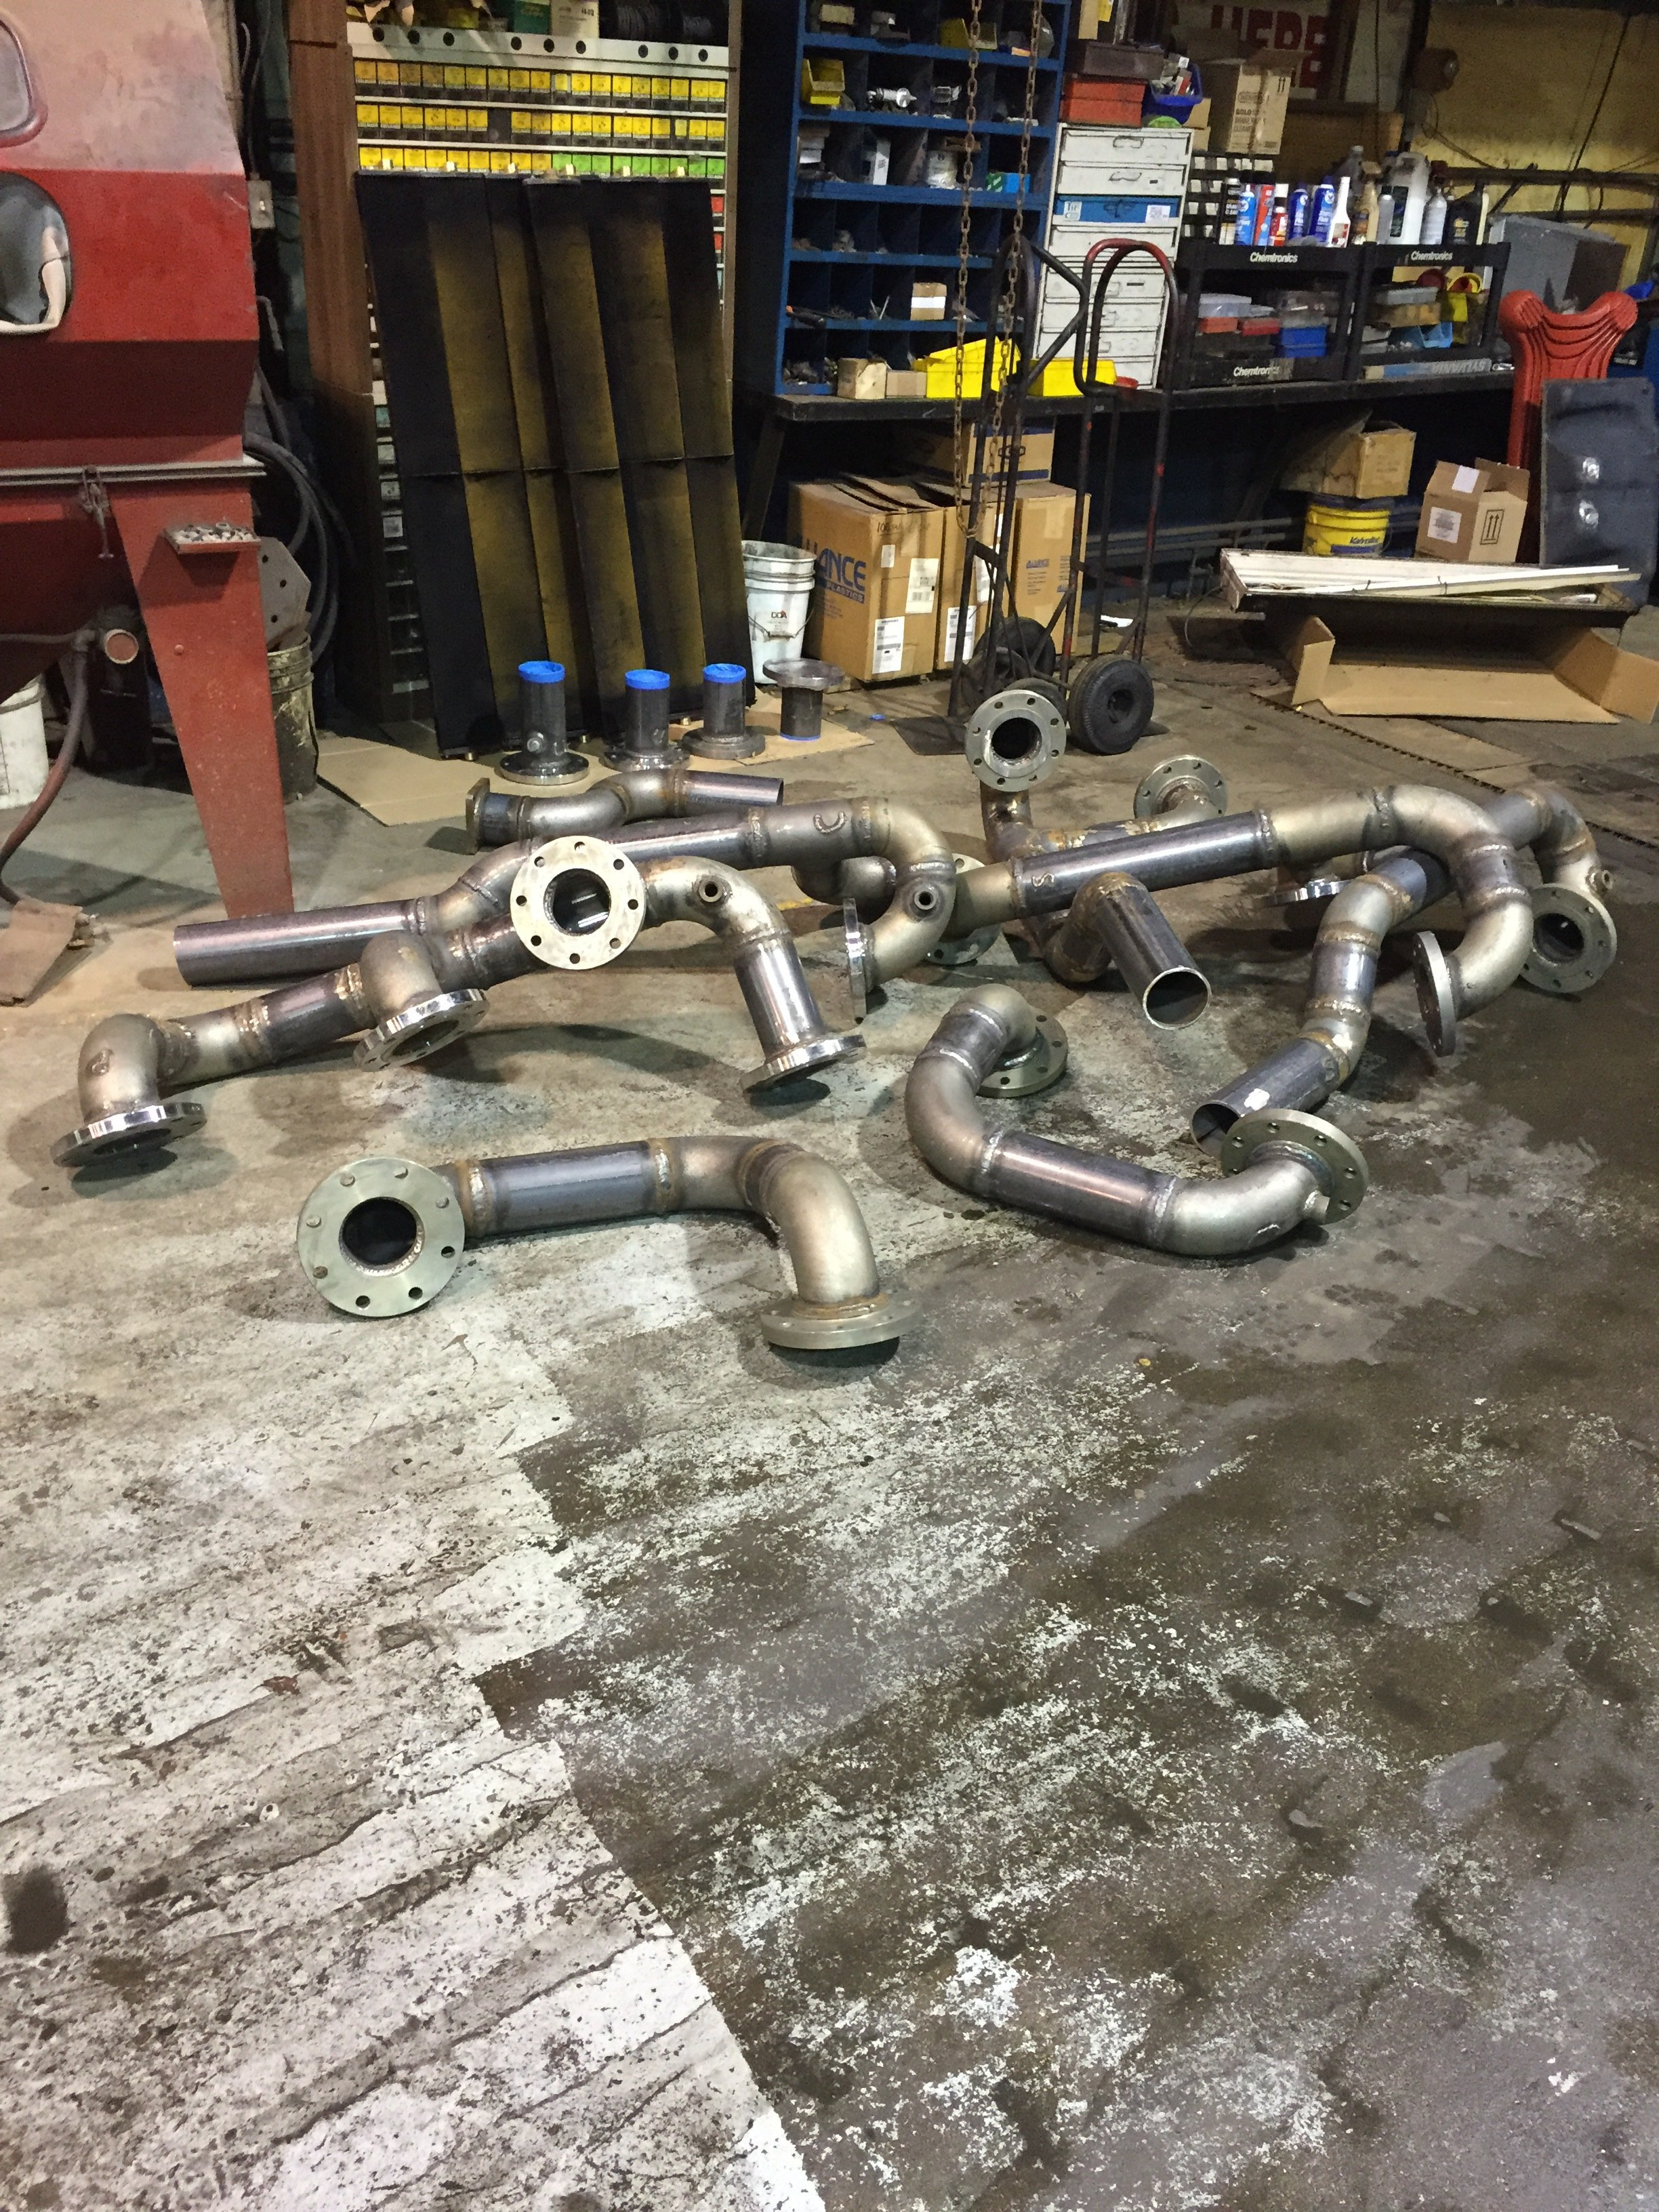 pipes cleaned and ready for delivery